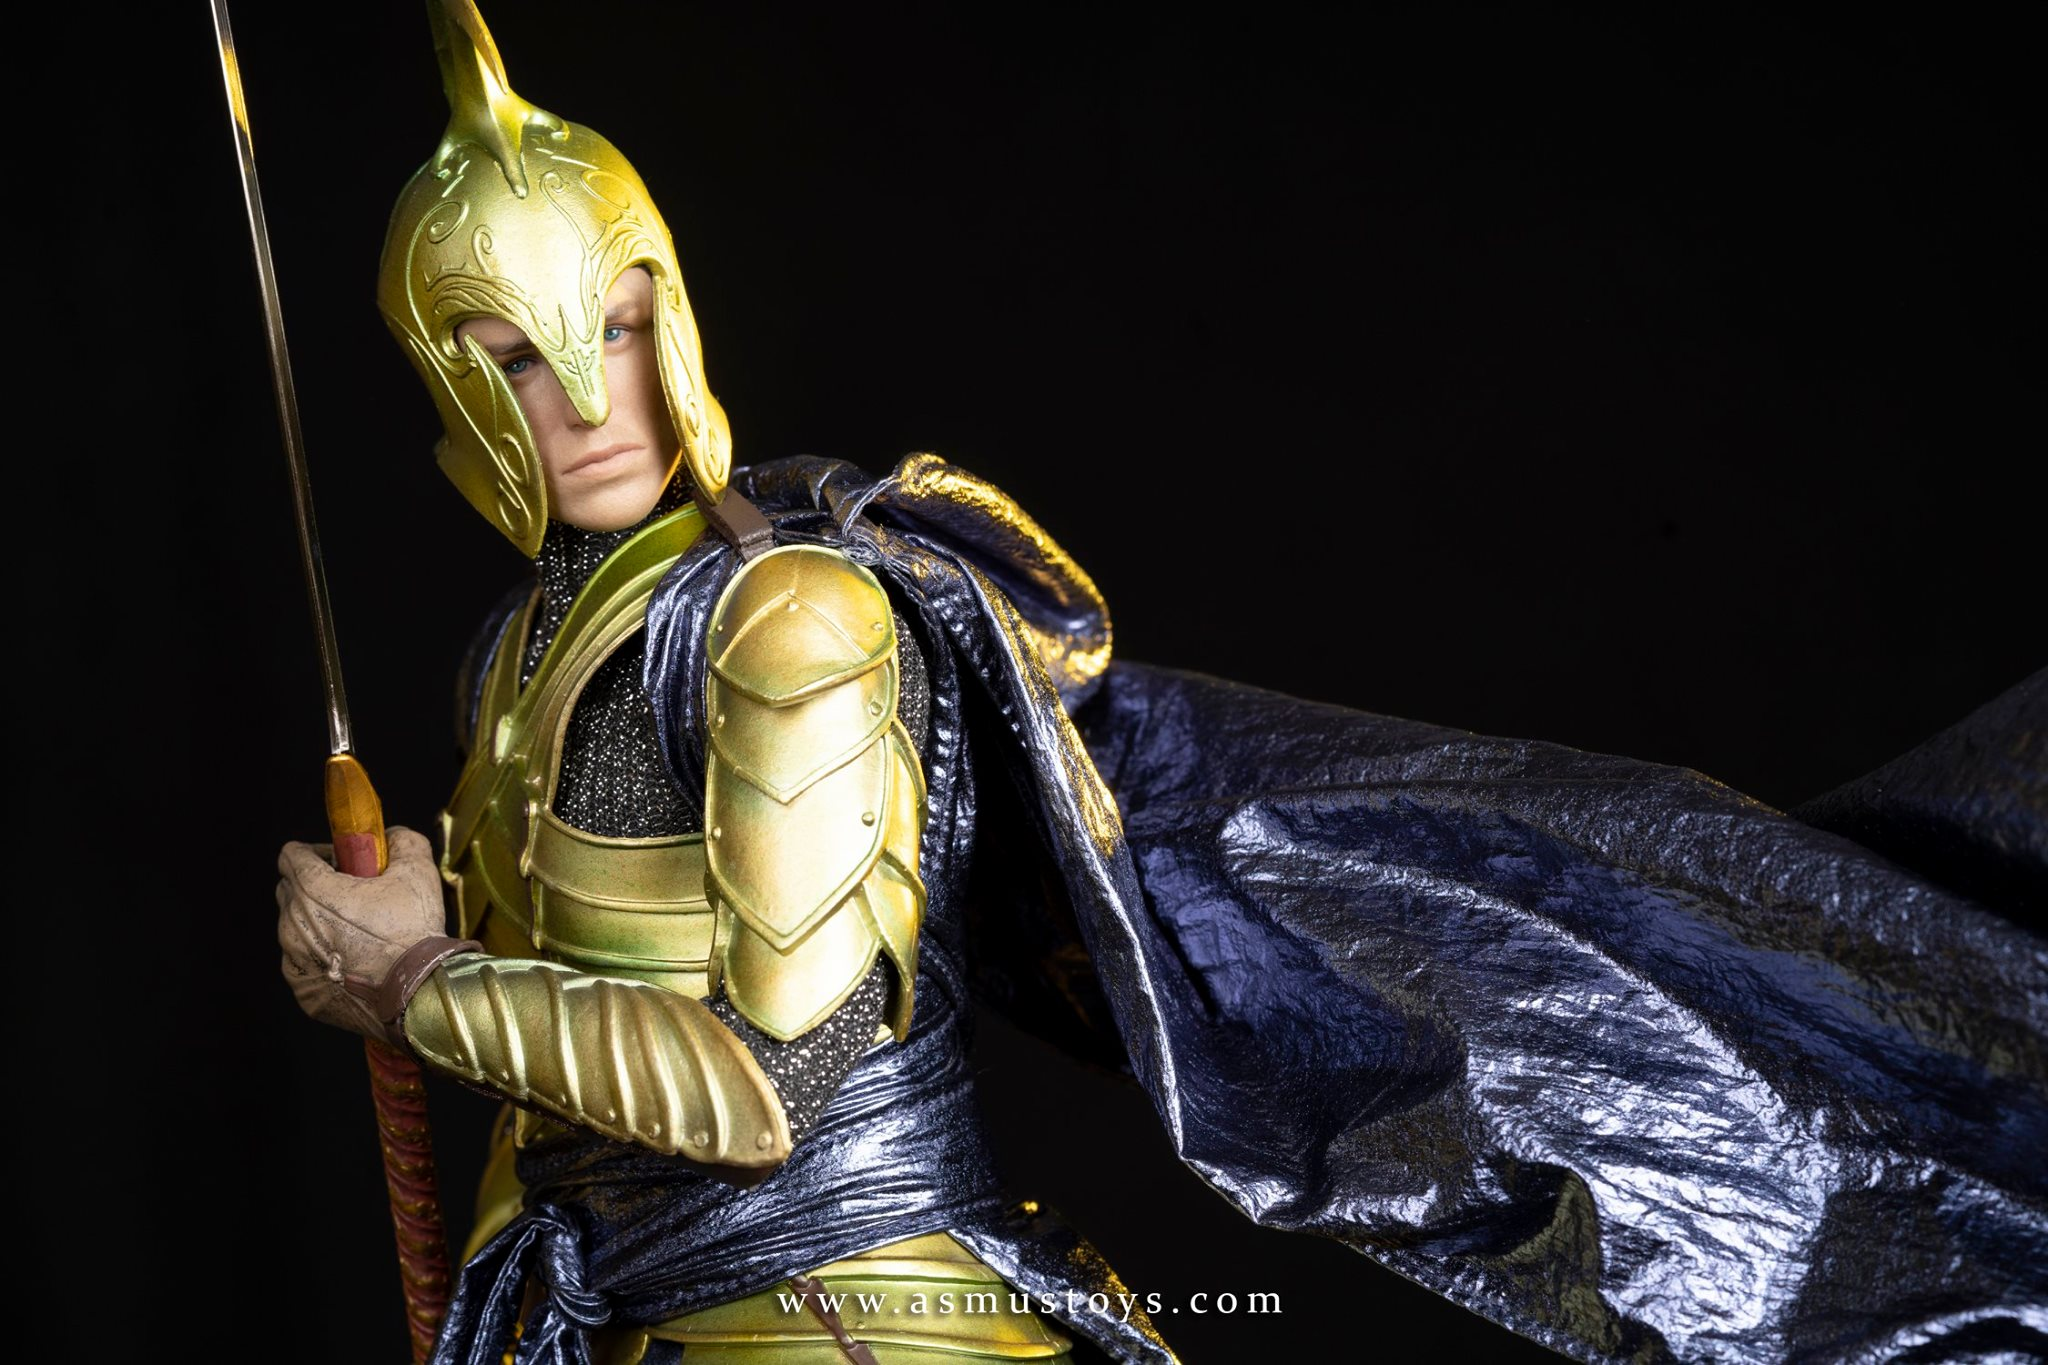 Asmus Toys Elven Warrior Final Product 013